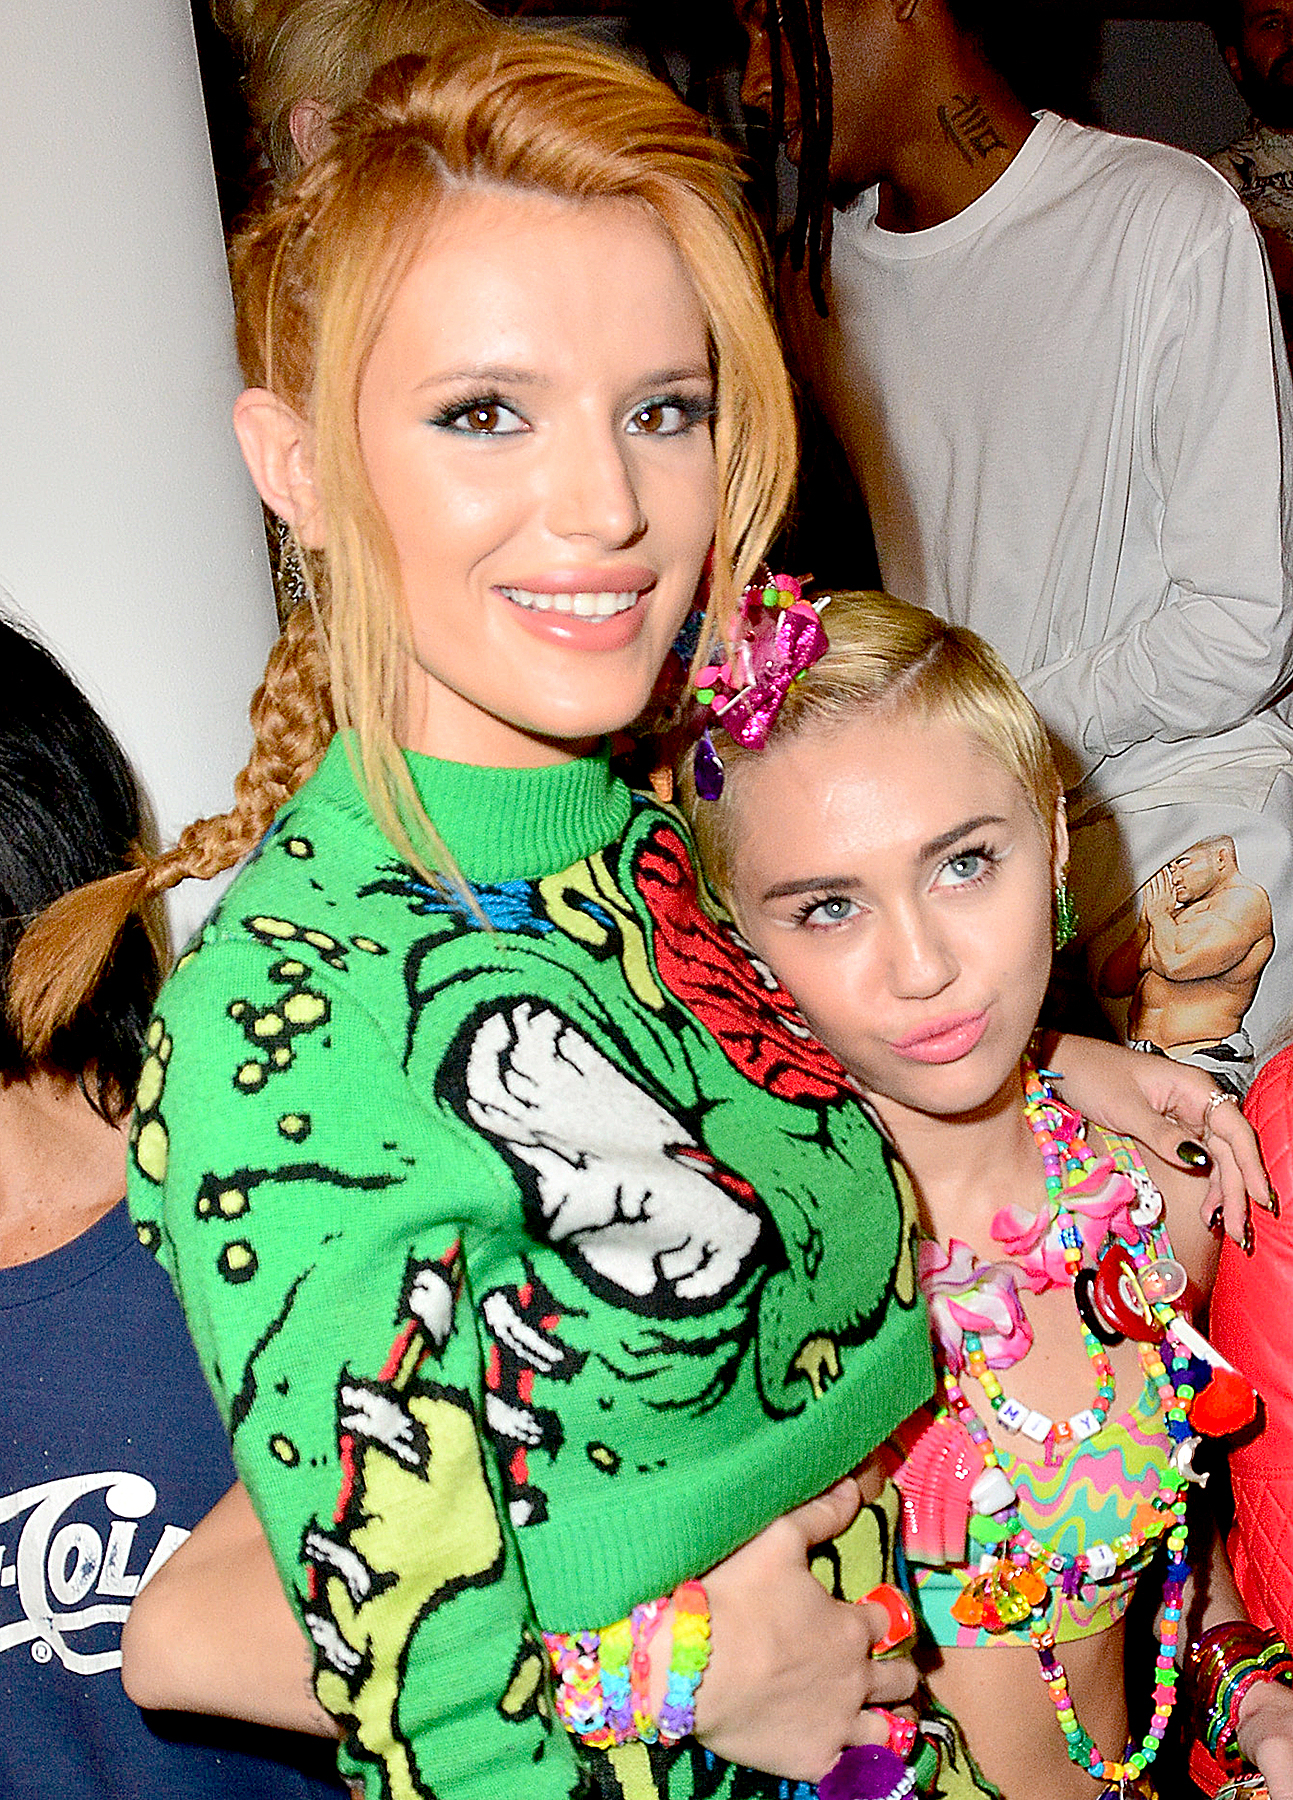 Bella Thorne and Miley Cyrus attend Jeremy Scott during MADE Fashion Week Spring 2015 at Milk Studios on September 10, 2014 in New York City.